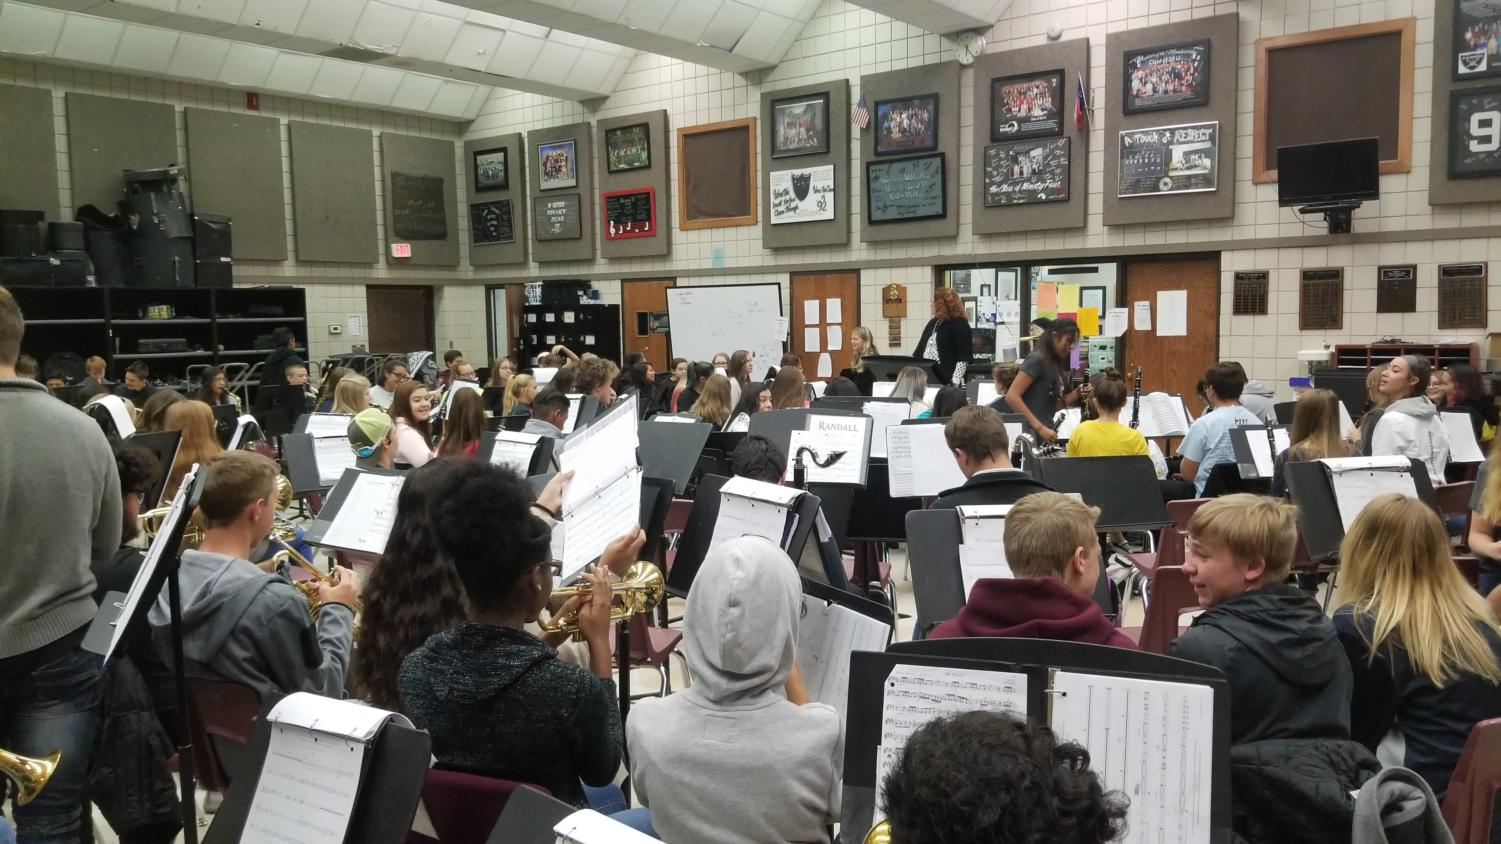 The band practices playing music during their first period band class.